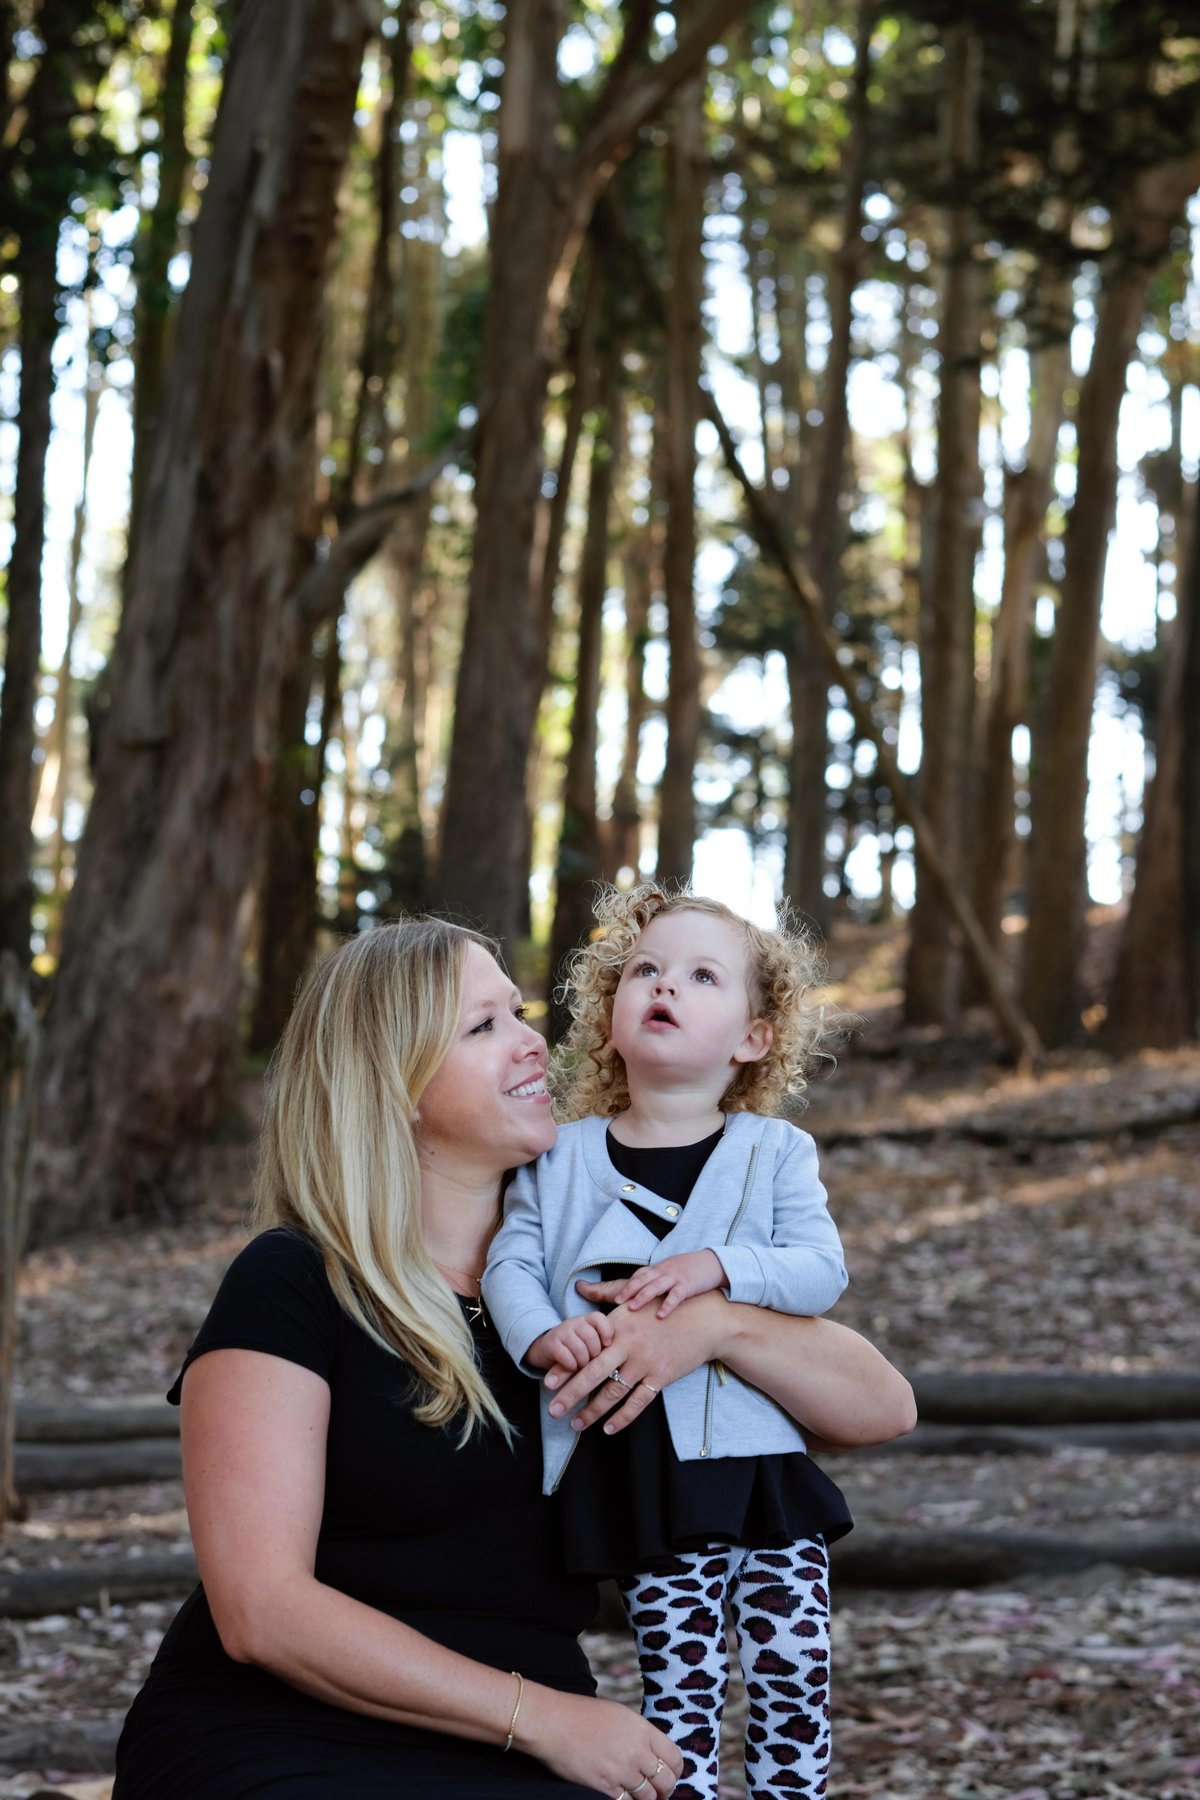 family-photographer-san-francisco-bay-area-camille-rogine-1583-tessa